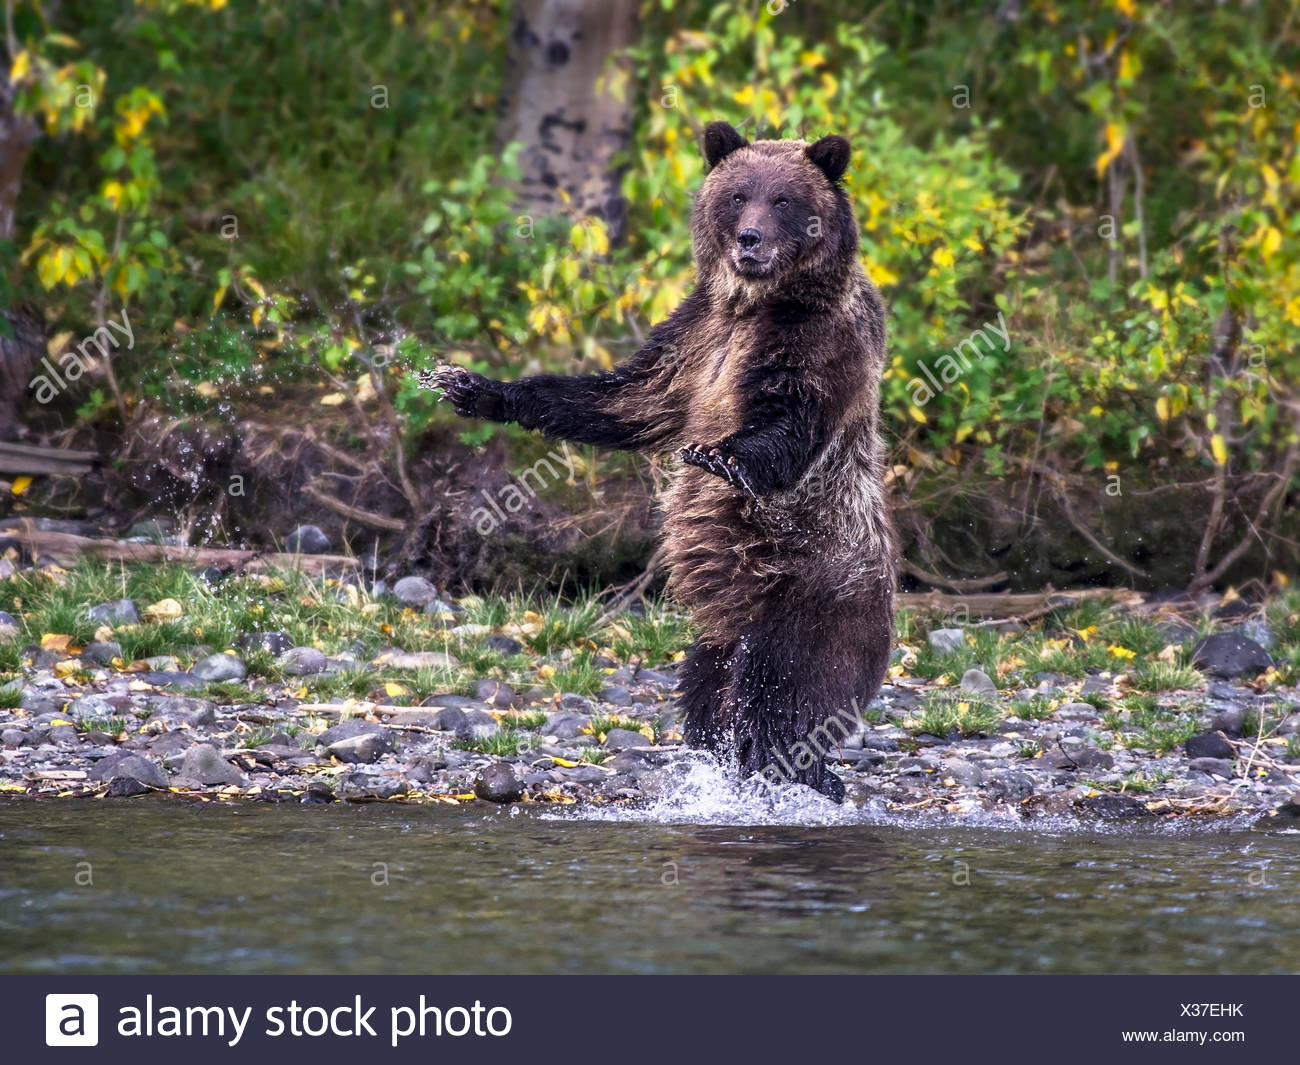 Grizzly Bear (Ursus arctos horribilis), Adult, startled and standing on edge of slamon stream, Fall, Autumn, Central British Columbia, Canada - Stock Image